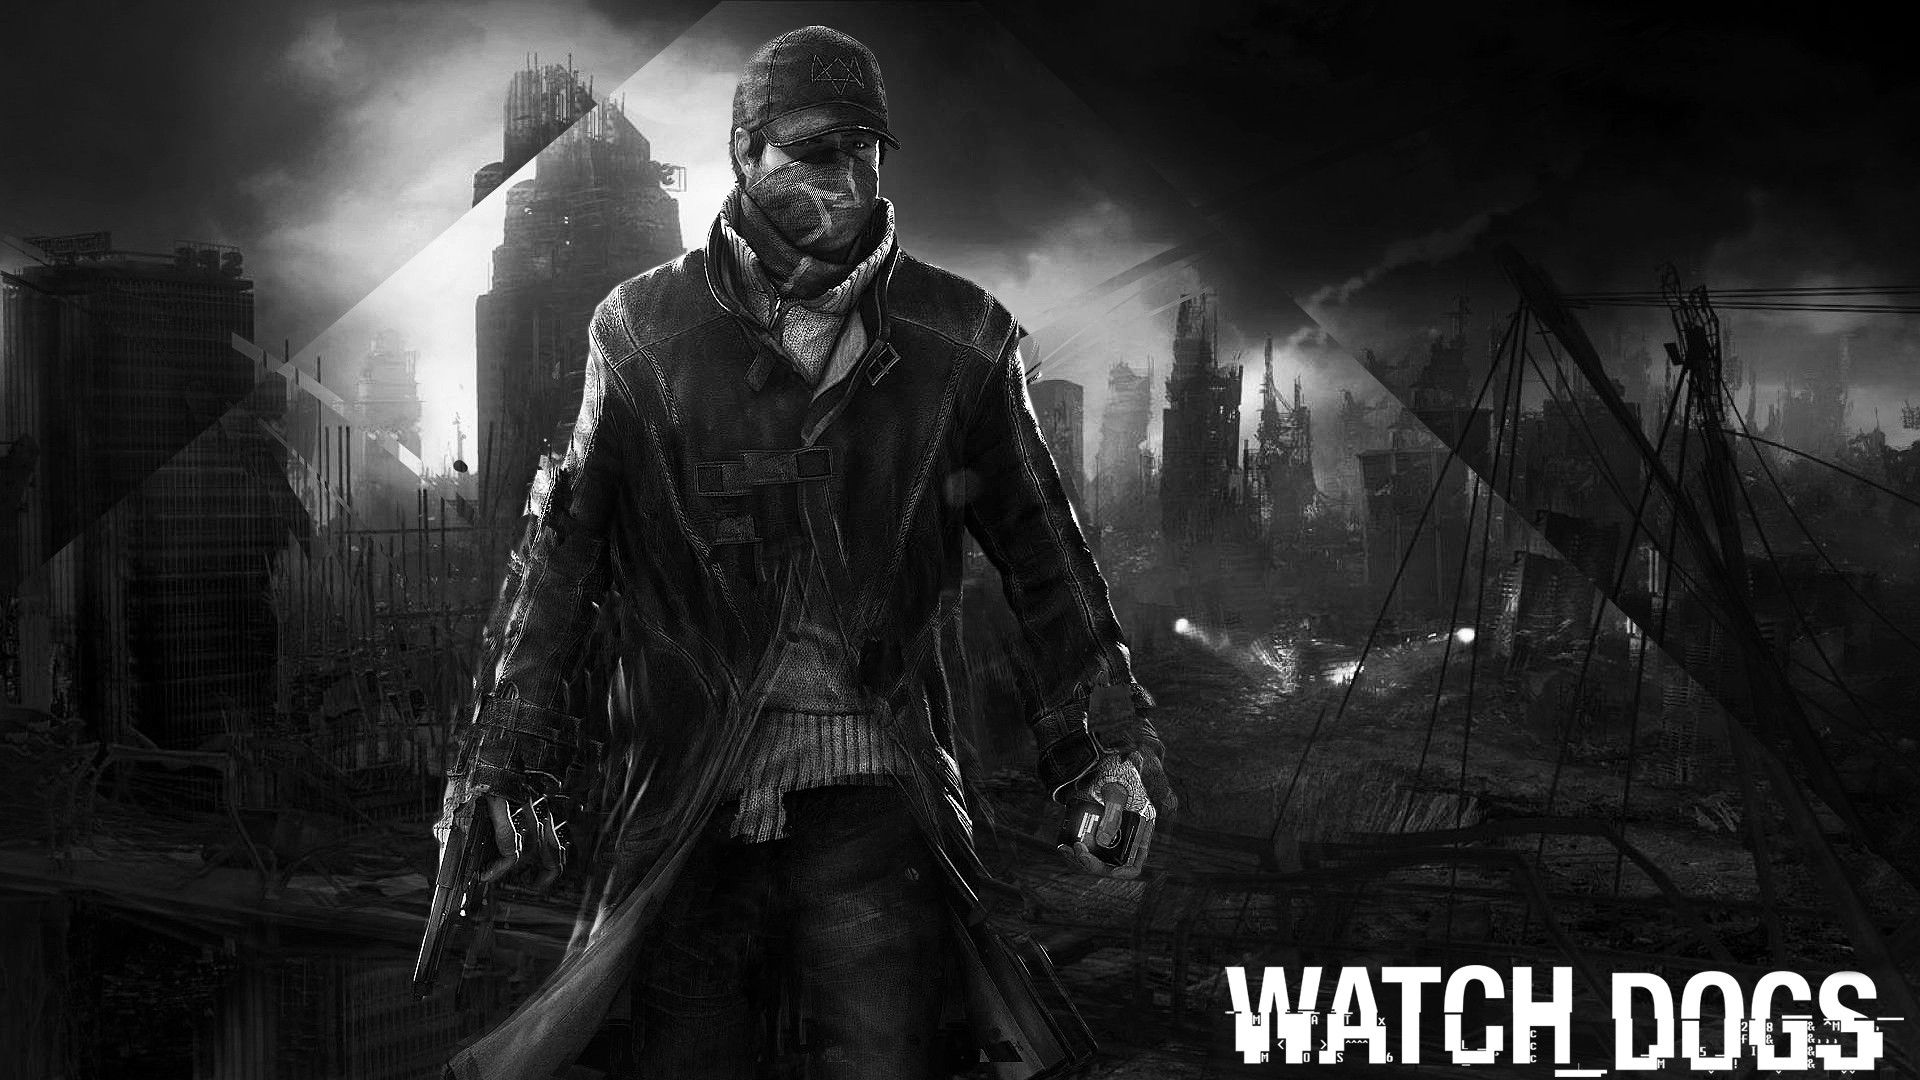 Watch Dogs City Wallpapers - Top Free Watch Dogs City ...